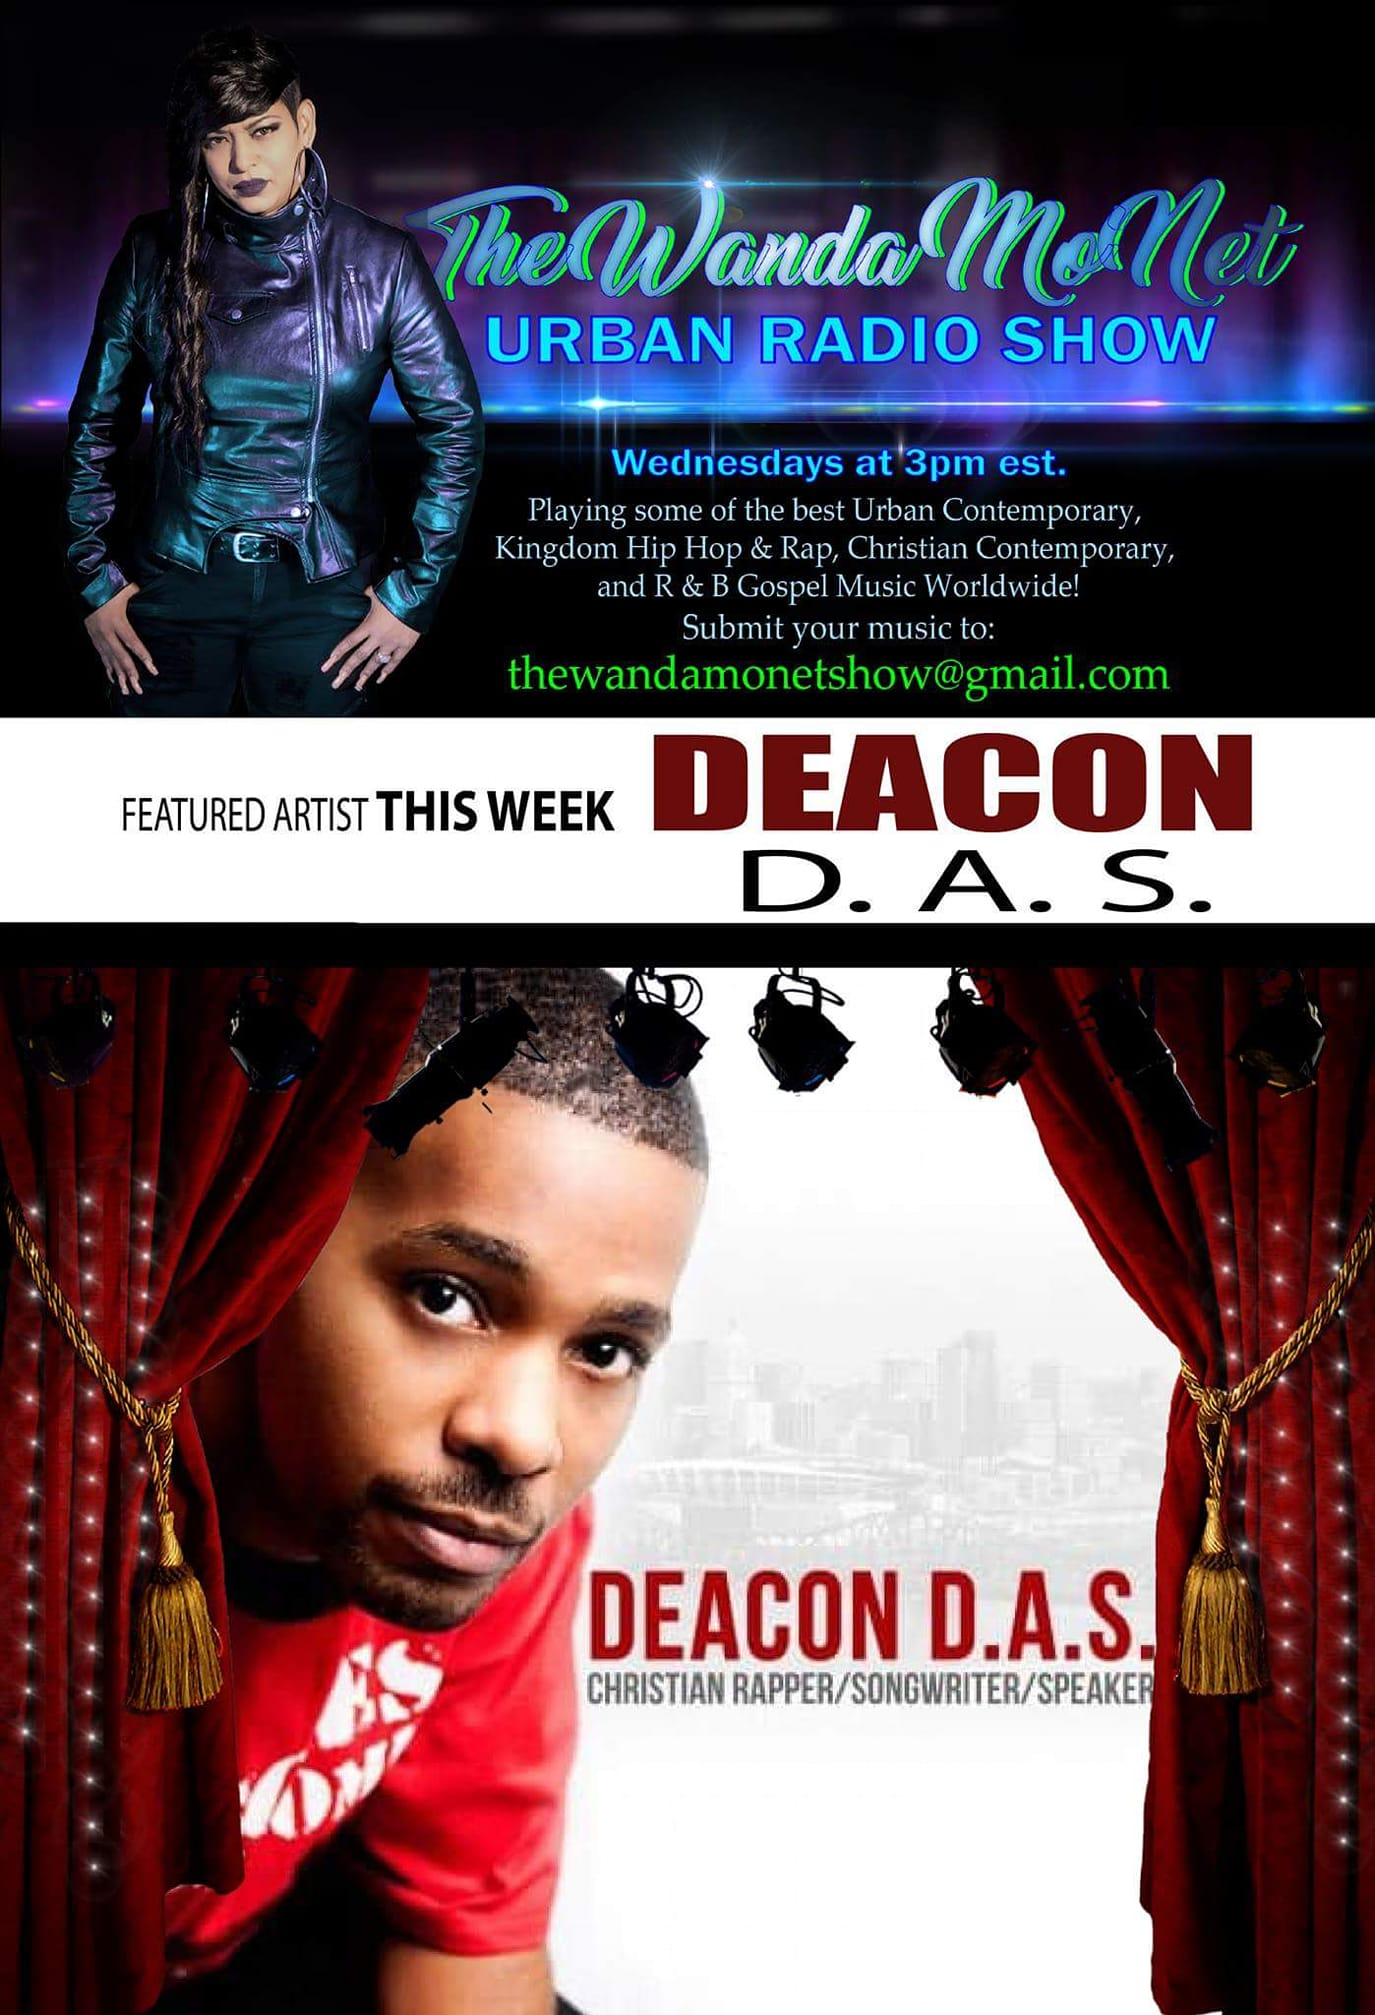 Deacon D.A.S. – Artist of the week : The Wanda Mo'net Urban Radio Show